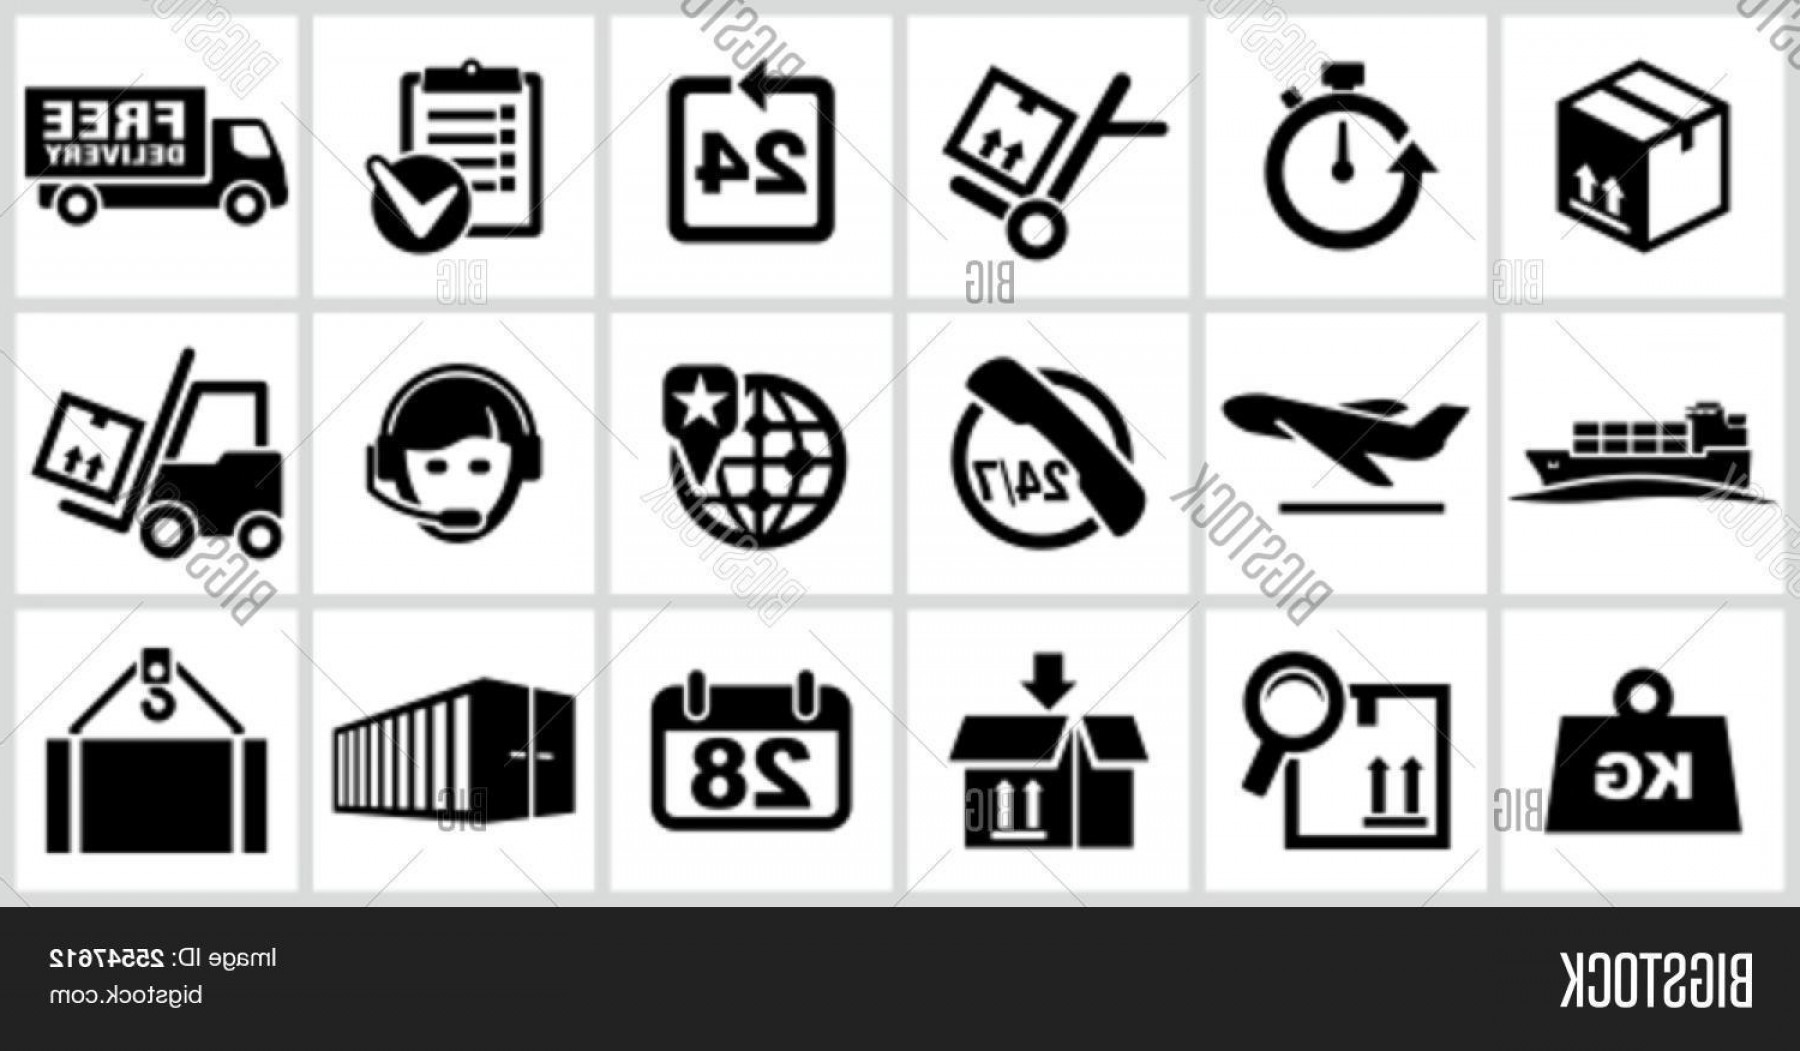 Cut Symbol Vector: Stock Vector Vector Black Logistics And Shipping Icons Set All White Areas Are Cut Away From Icons And Black Areas Merged